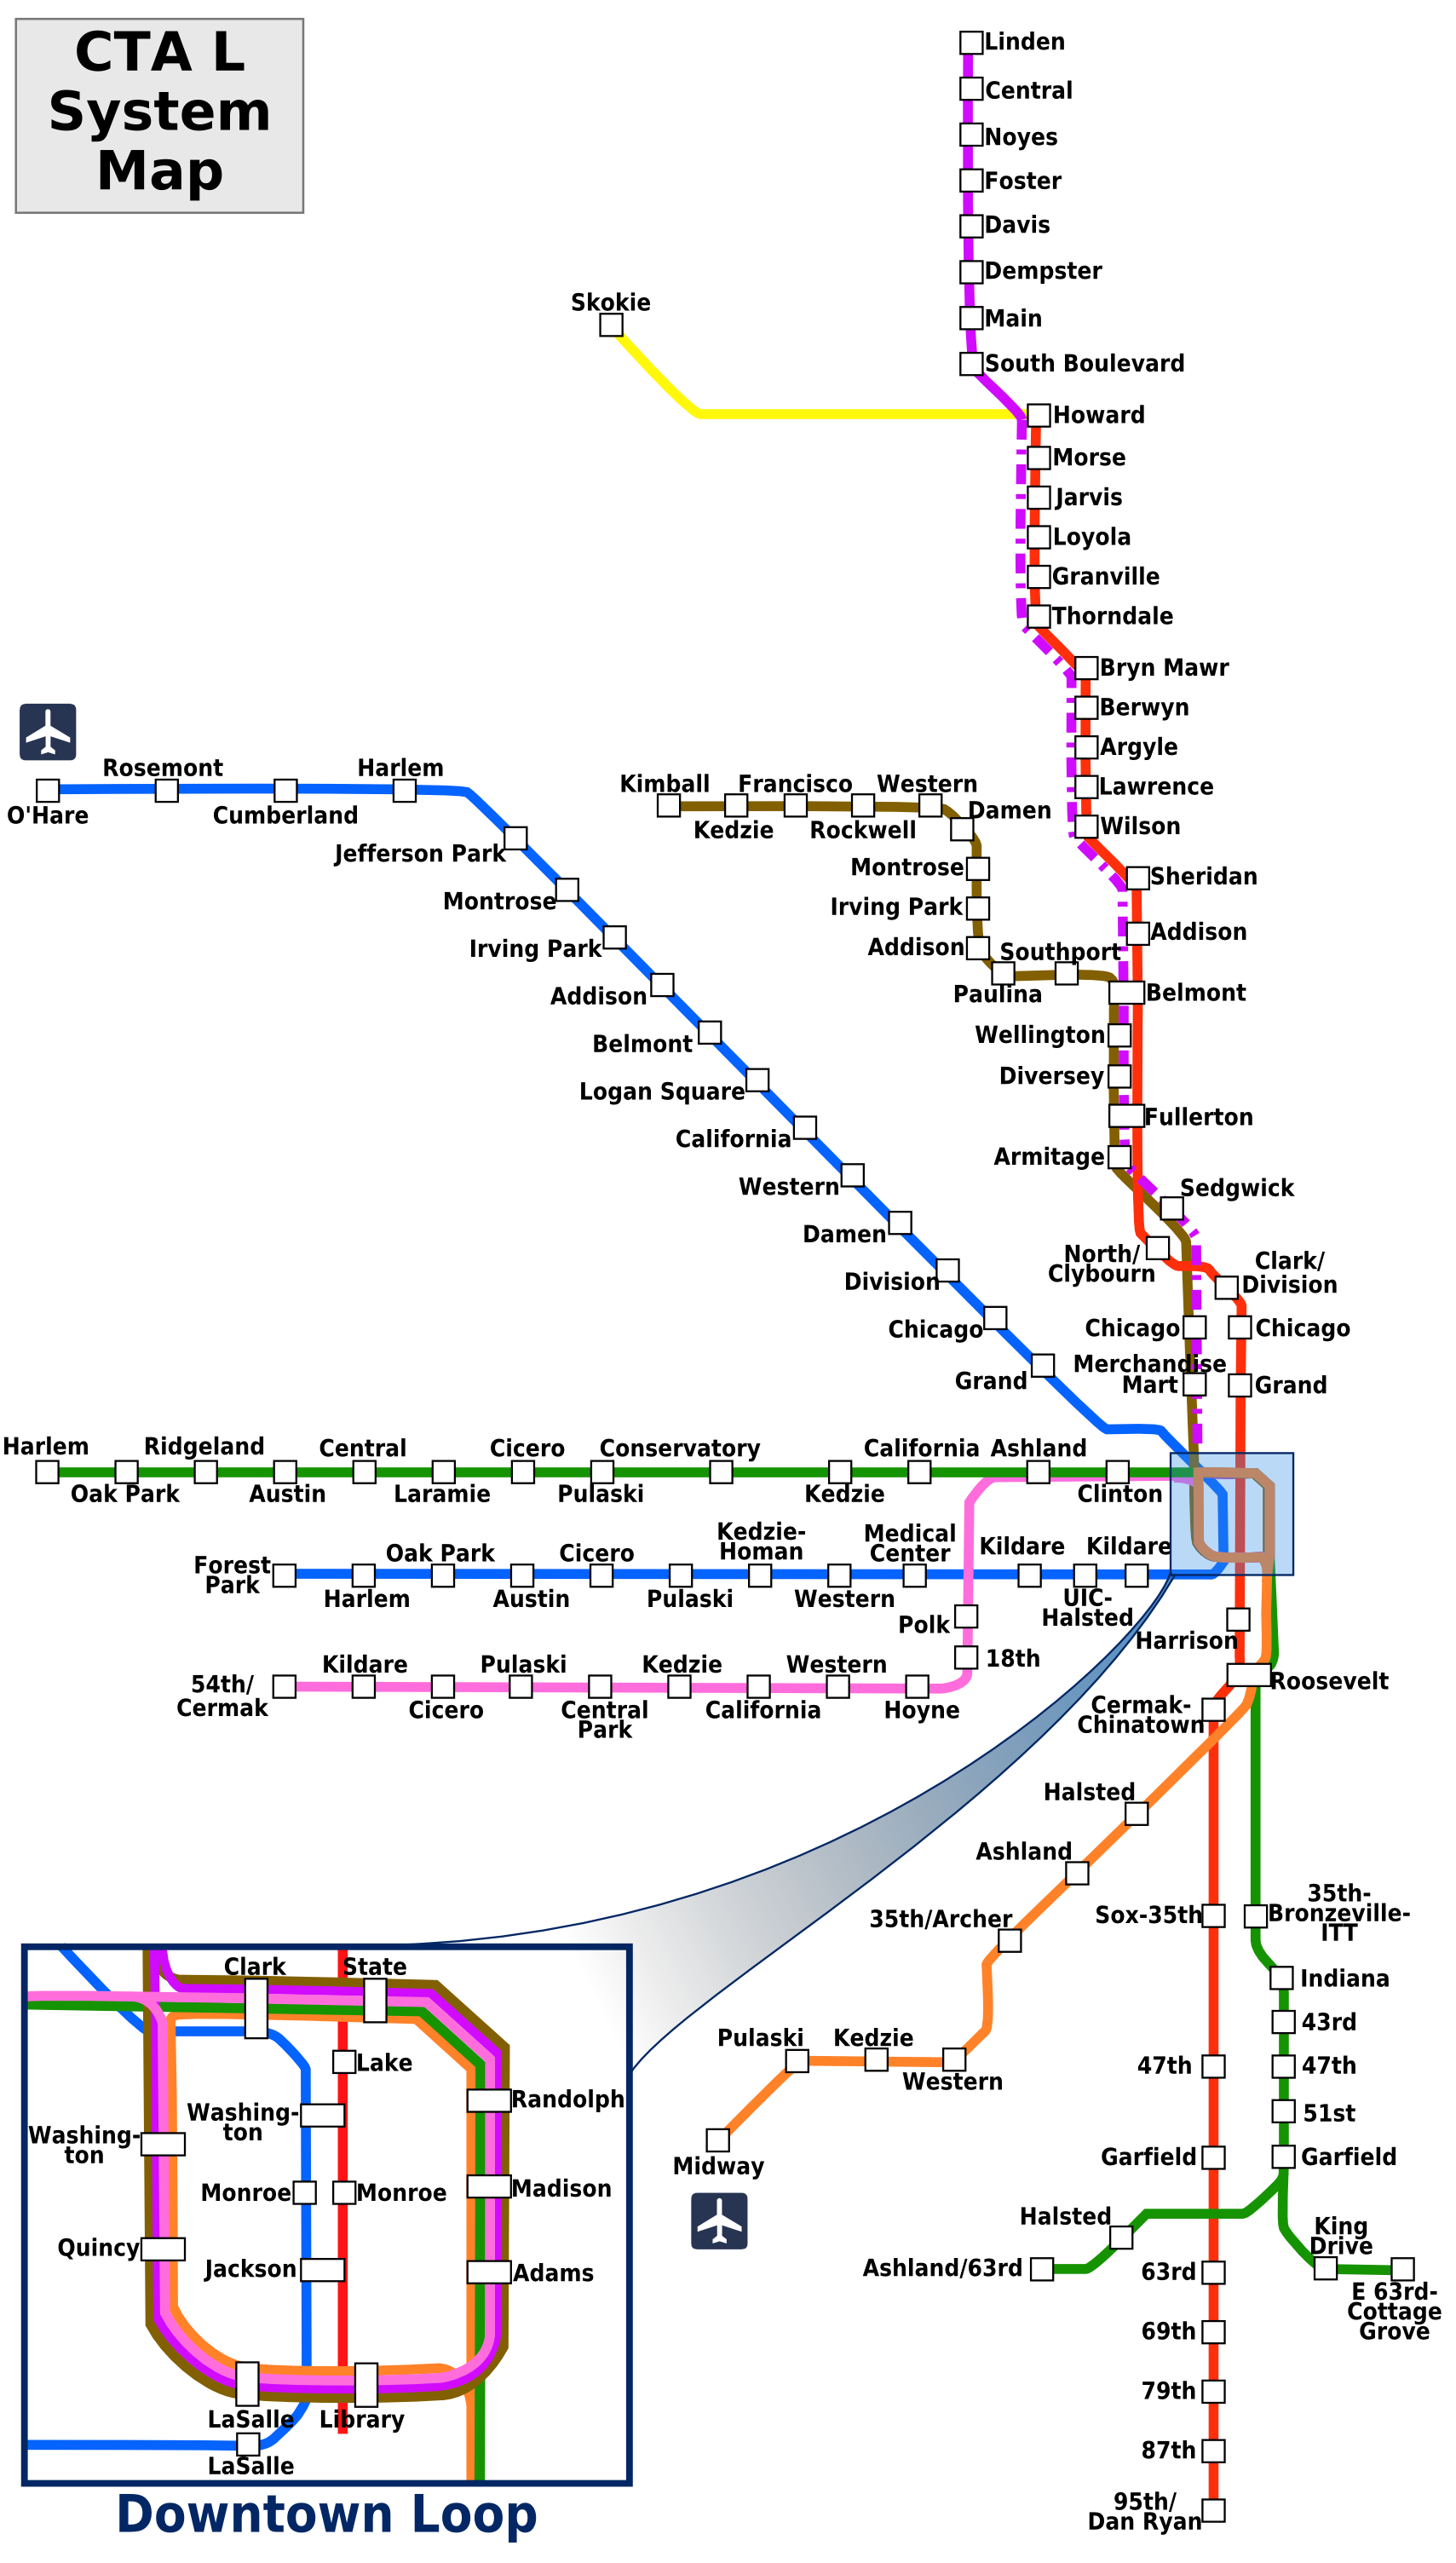 cta map red line with 01 Arlingtonheights on L Train Chicago Map moreover 01 ArlingtonHeights additionally Sneak Peak At Urumqis New High Speed Rail Station additionally State Street Subway System Chicago Il likewise Good To Know An Introduction To Chicagos Public Transit System.